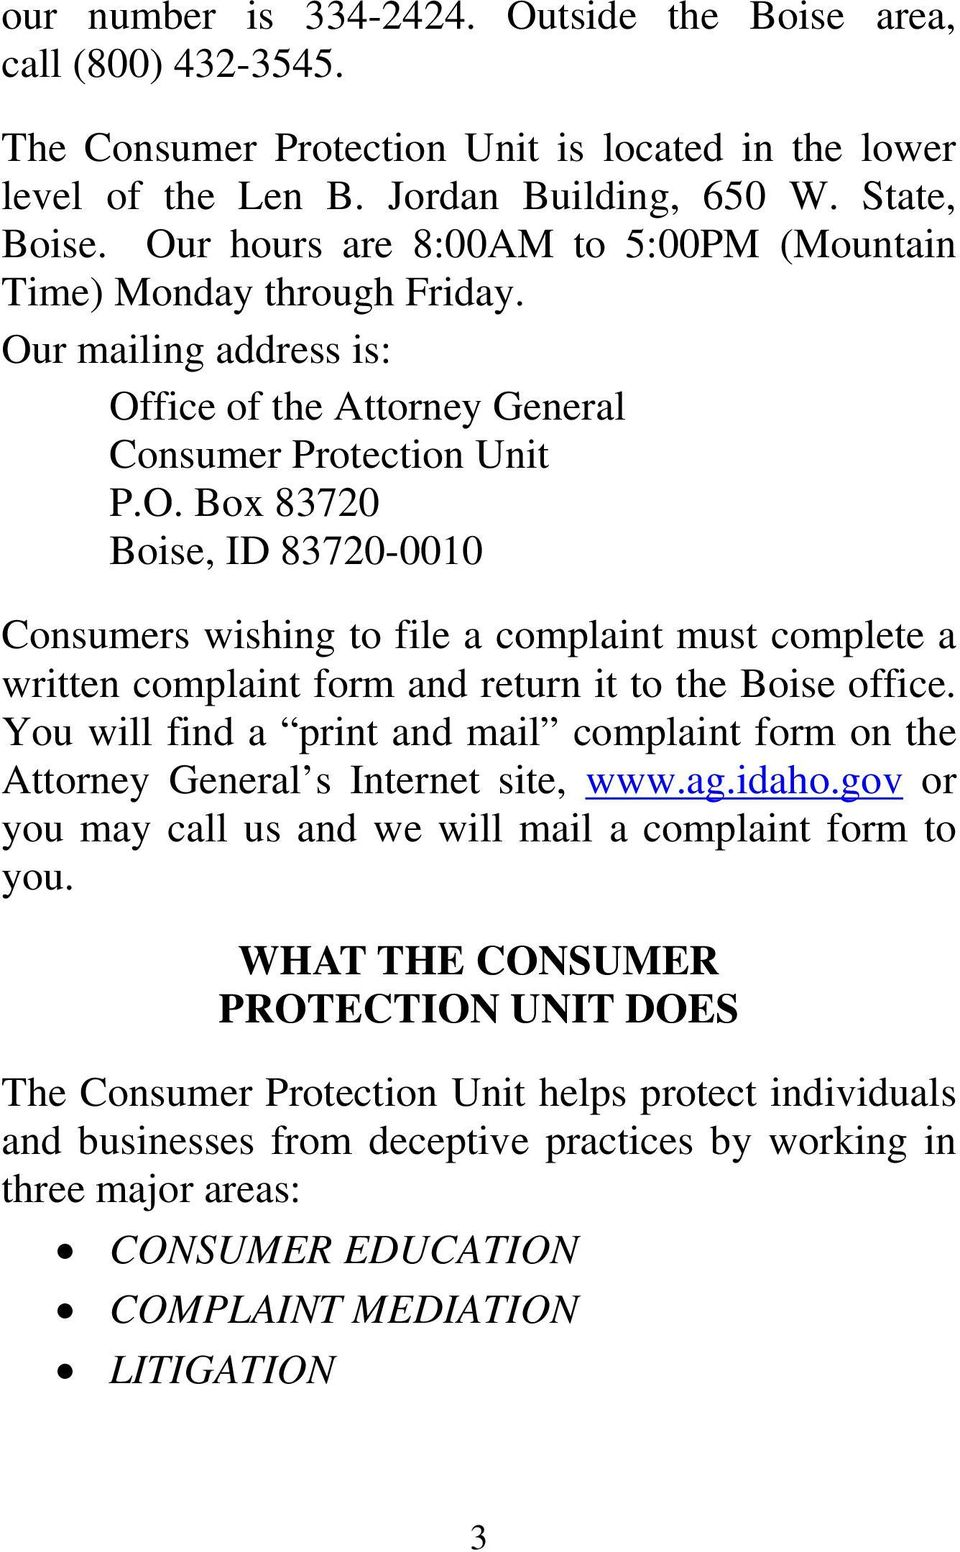 You will find a print and mail complaint form on the Attorney General s Internet site, www.ag.idaho.gov or you may call us and we will mail a complaint form to you.